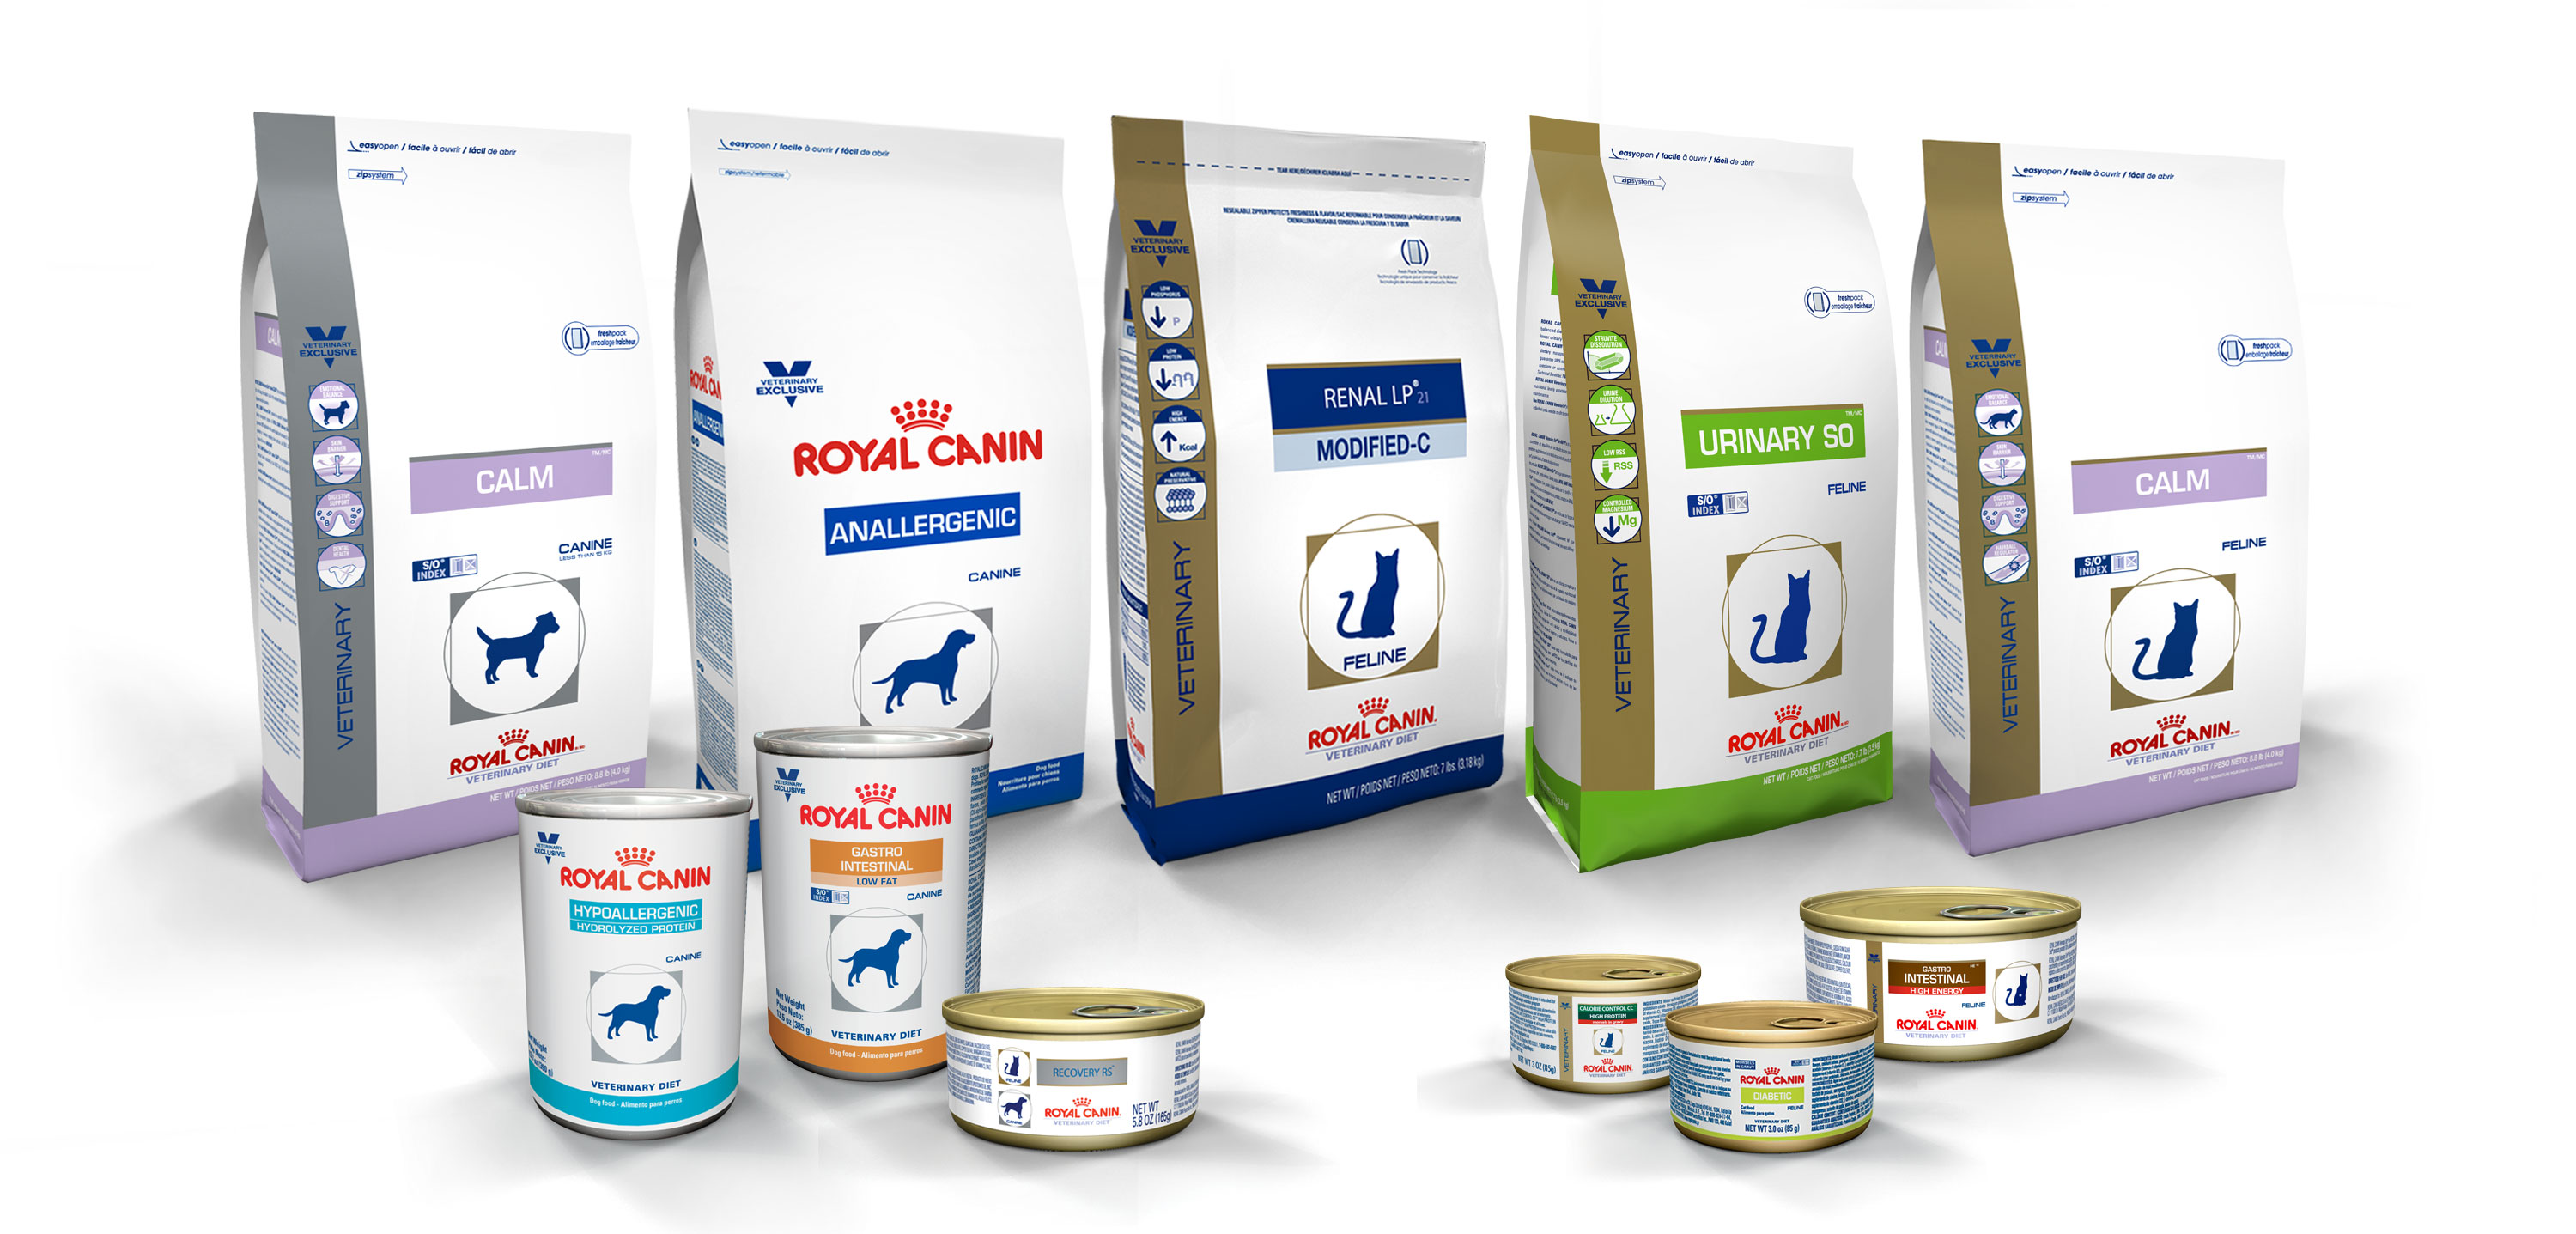 Royal Canin Diets